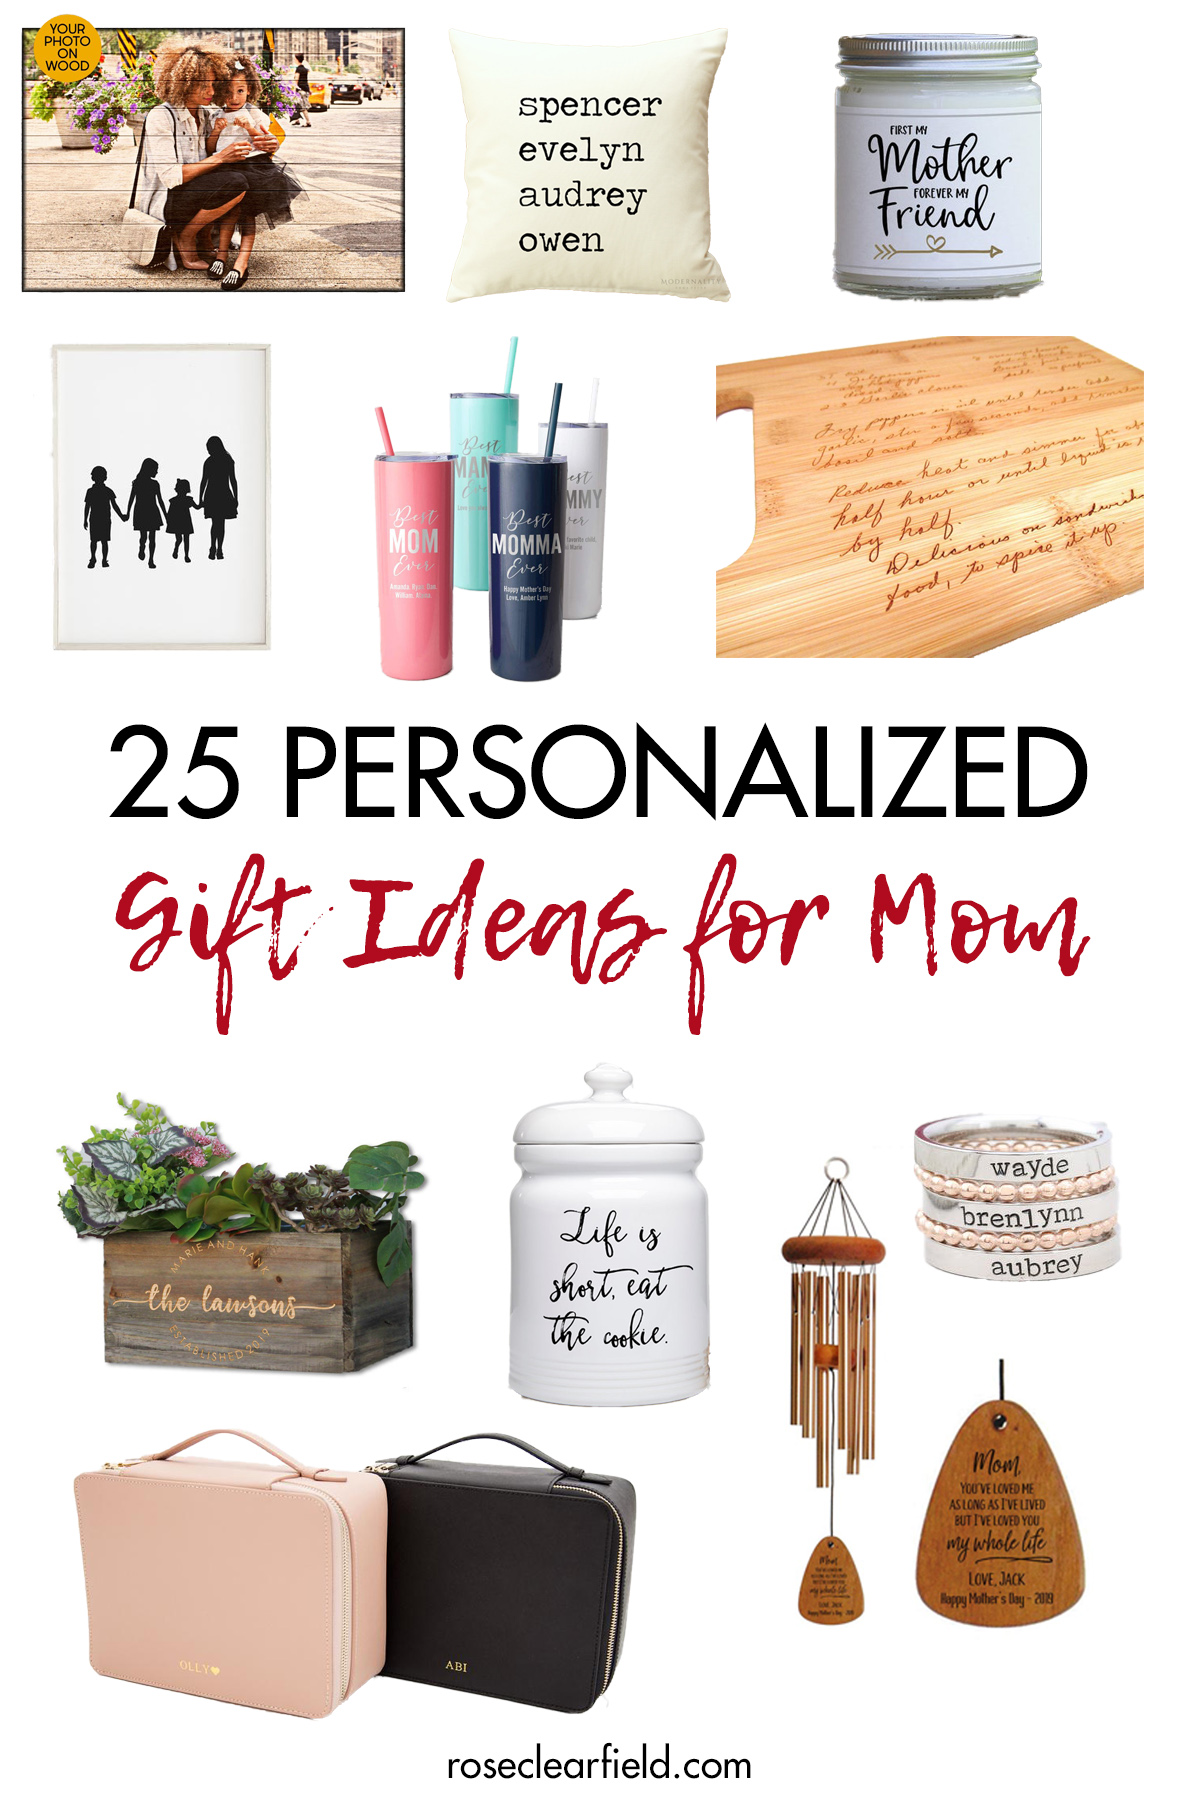 25 Personalized Gift Ideas For Mom Rose Clearfield